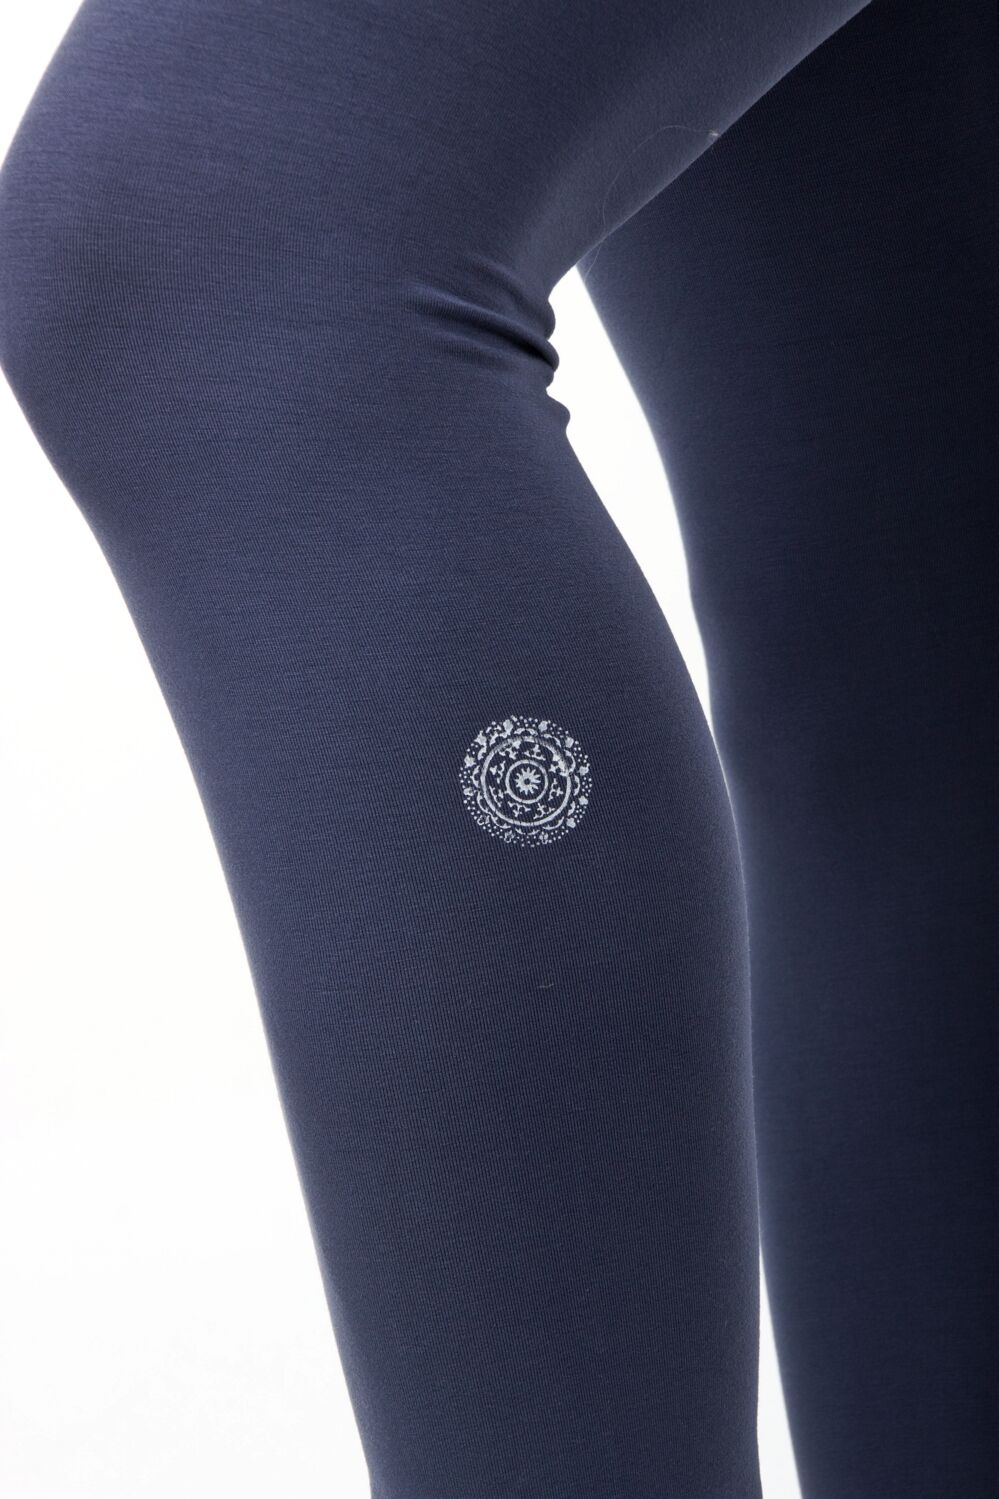 Indigo Grey Yogis Leggings S/M 2